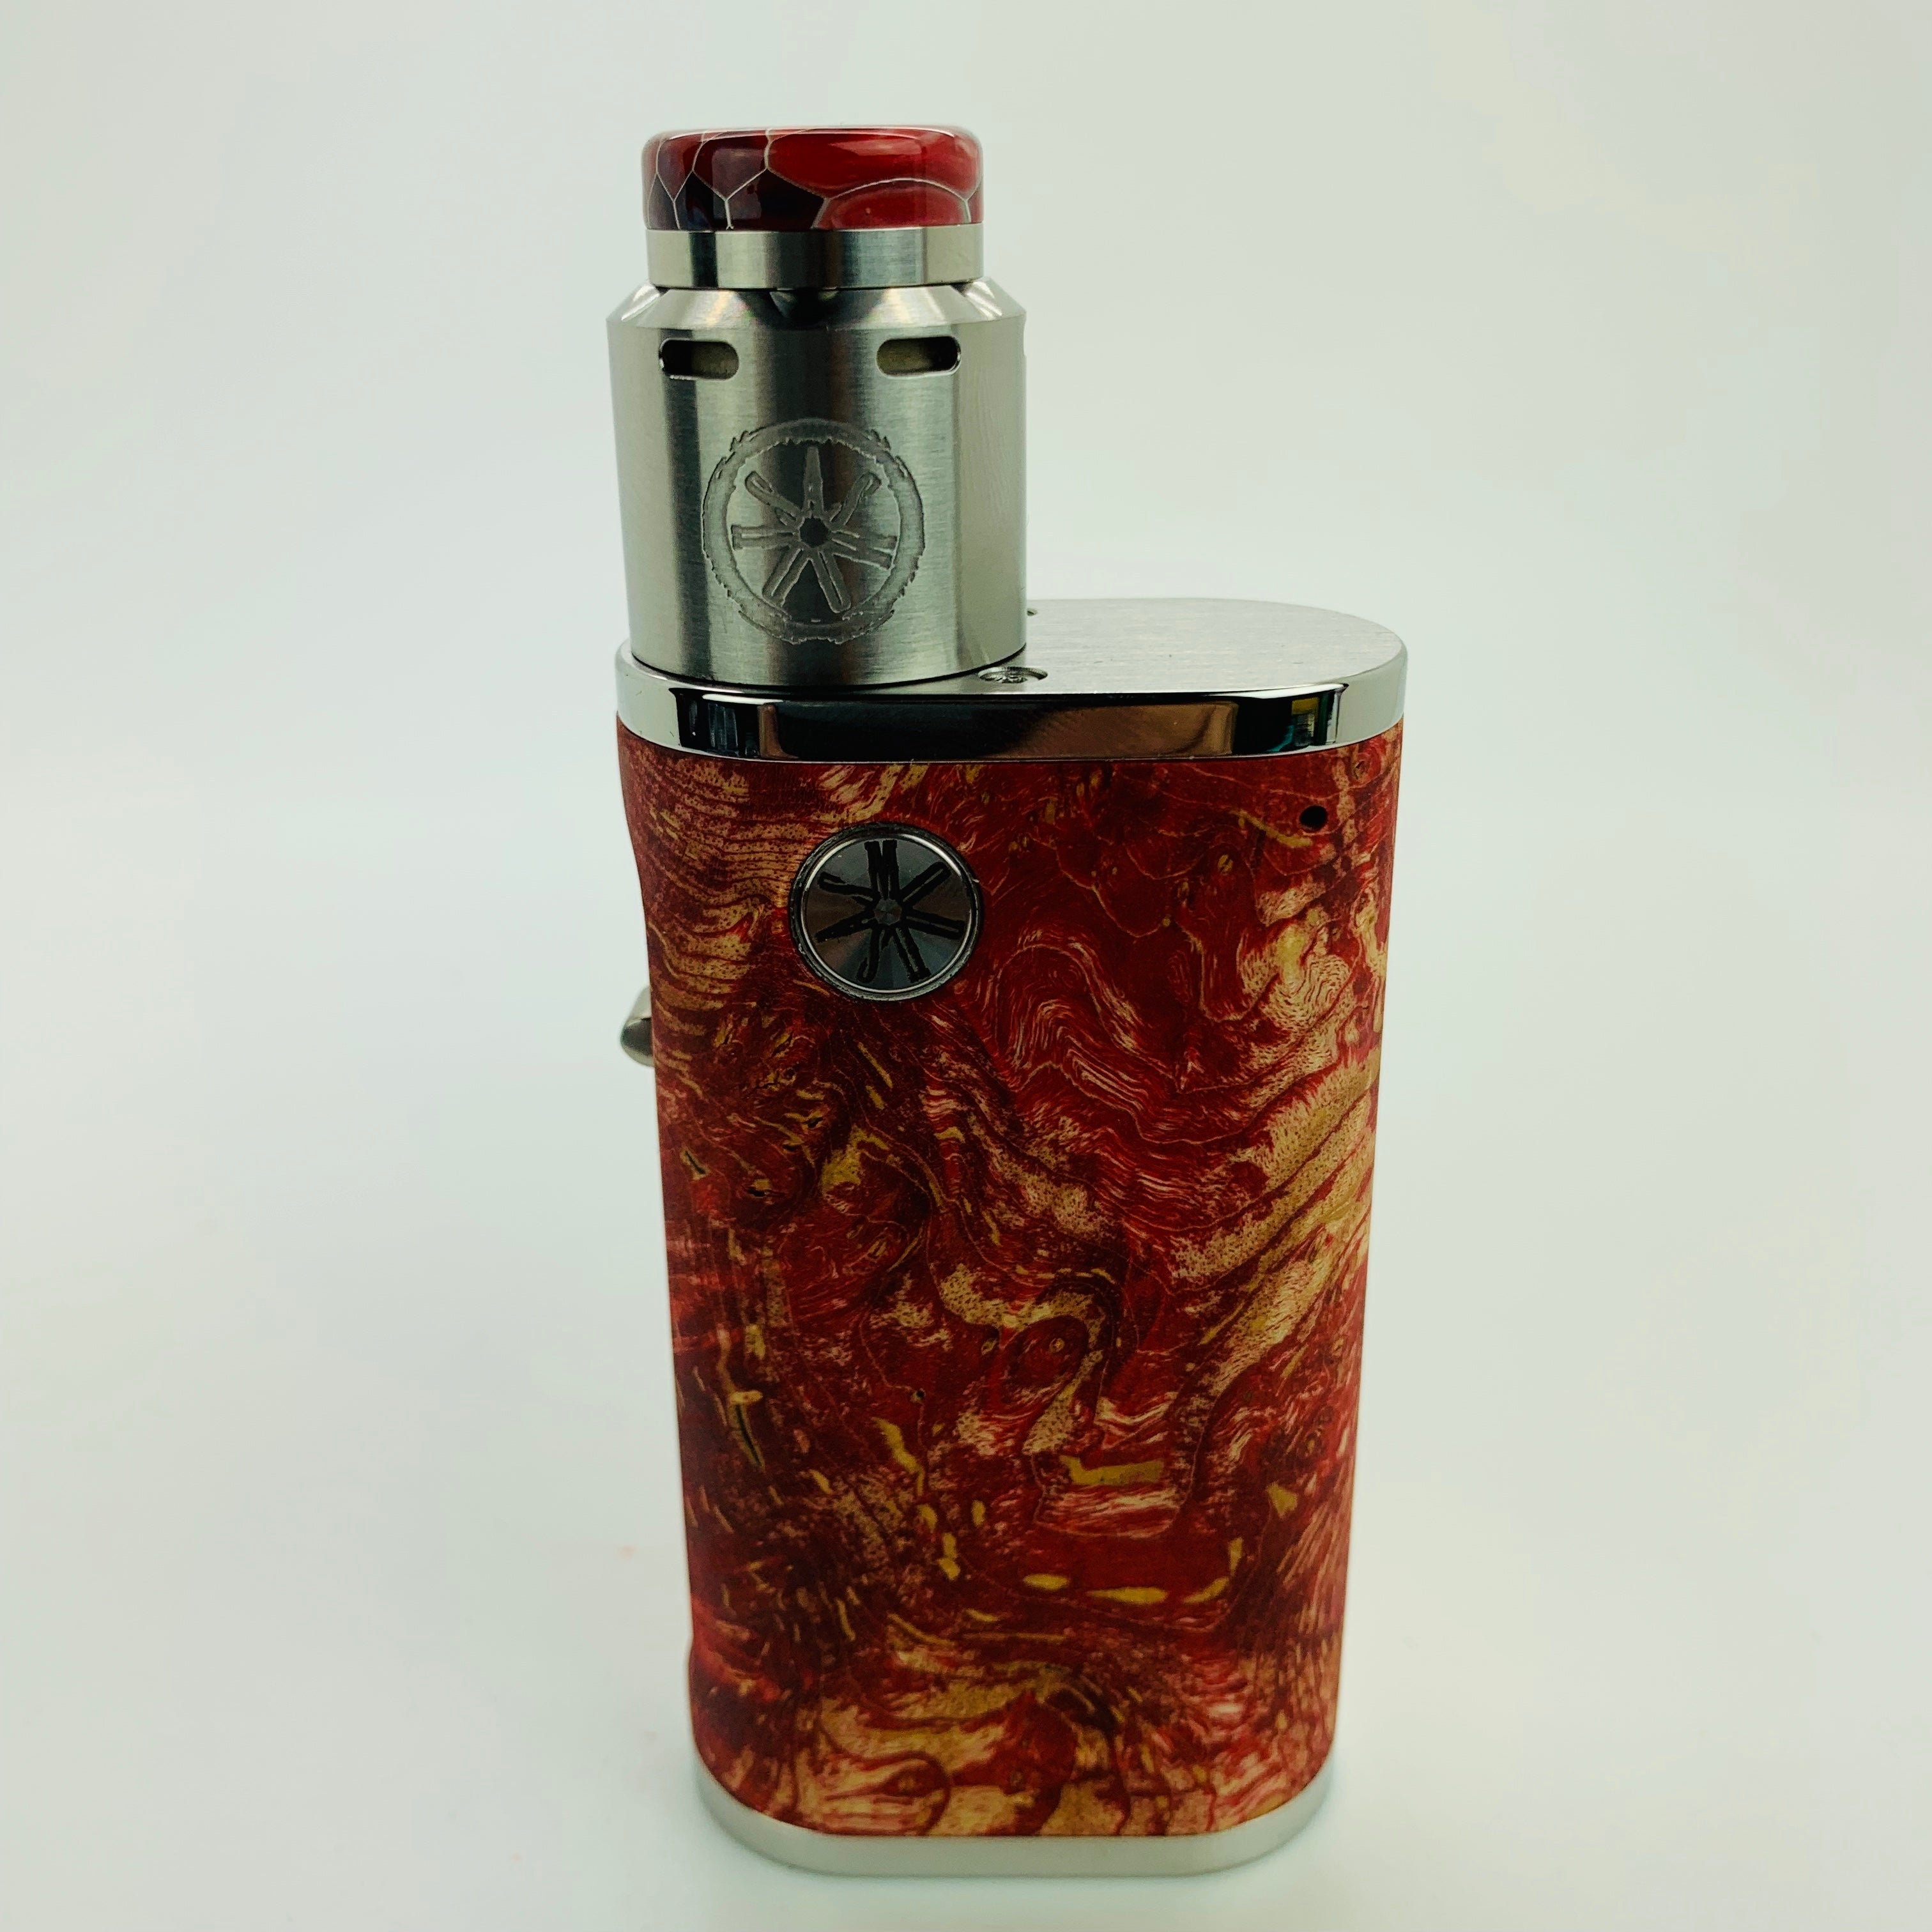 1 of 1 Pumper 18 Squonk Kit with .Blank RDA and Honeycomb Drip Tip #K44